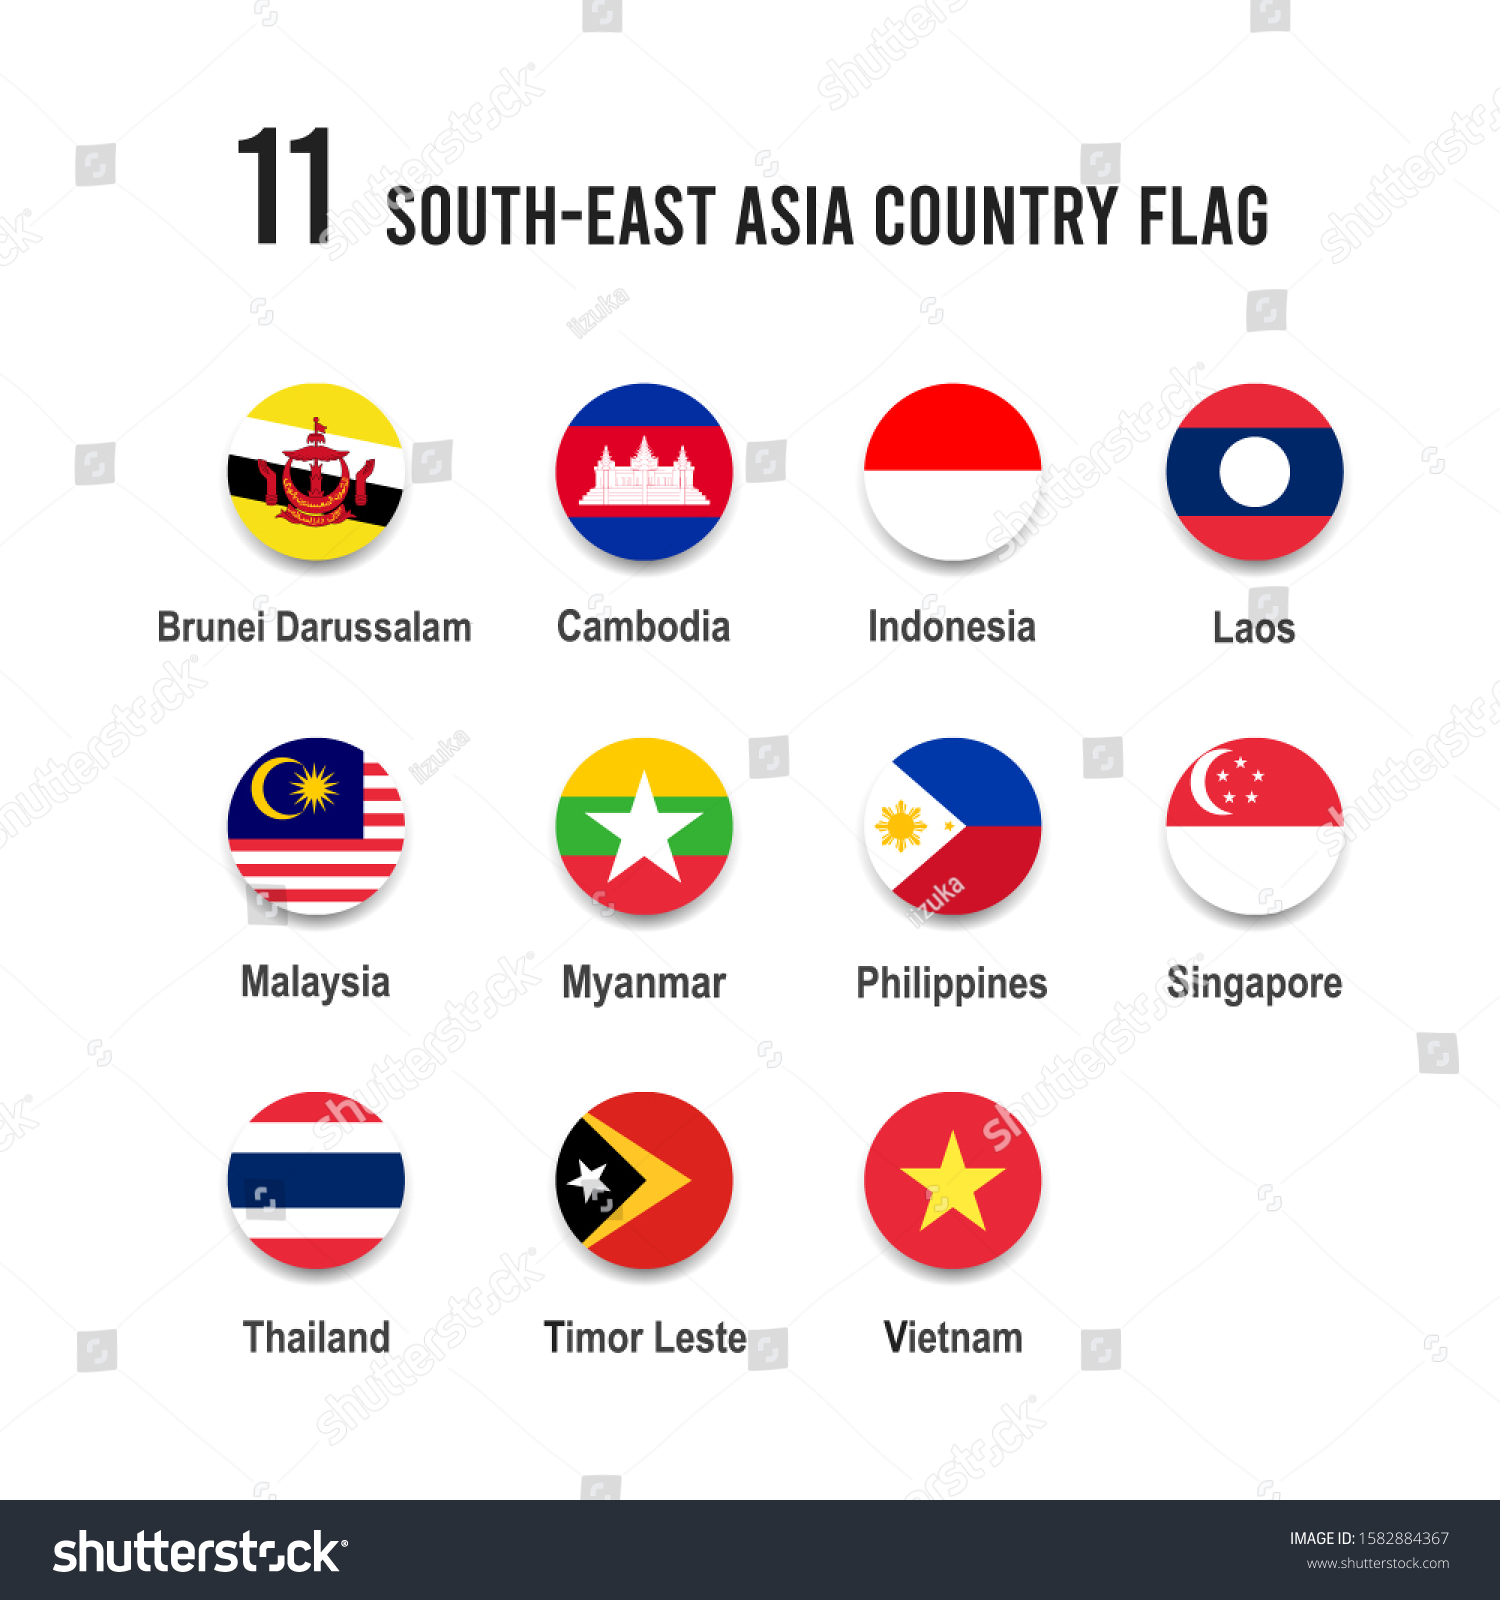 south asian flags flag of the association of southeast asian nations southeast asian countries flags asean country flags south asian country flags asean flags and countries